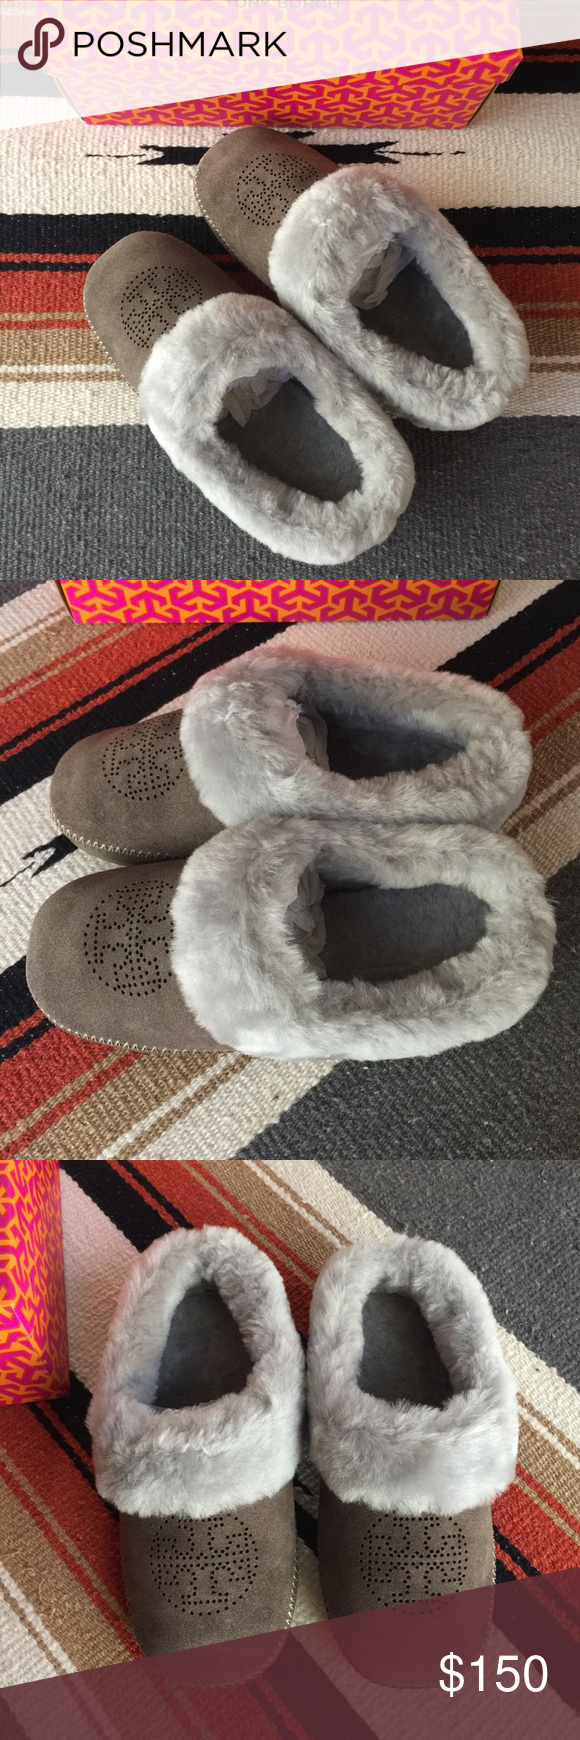 38aaf5de39a NWT Tory Burch Coley Perforated Suede Slippers NWT Tory Burch Coley  Perforated Slipper - Deep Split